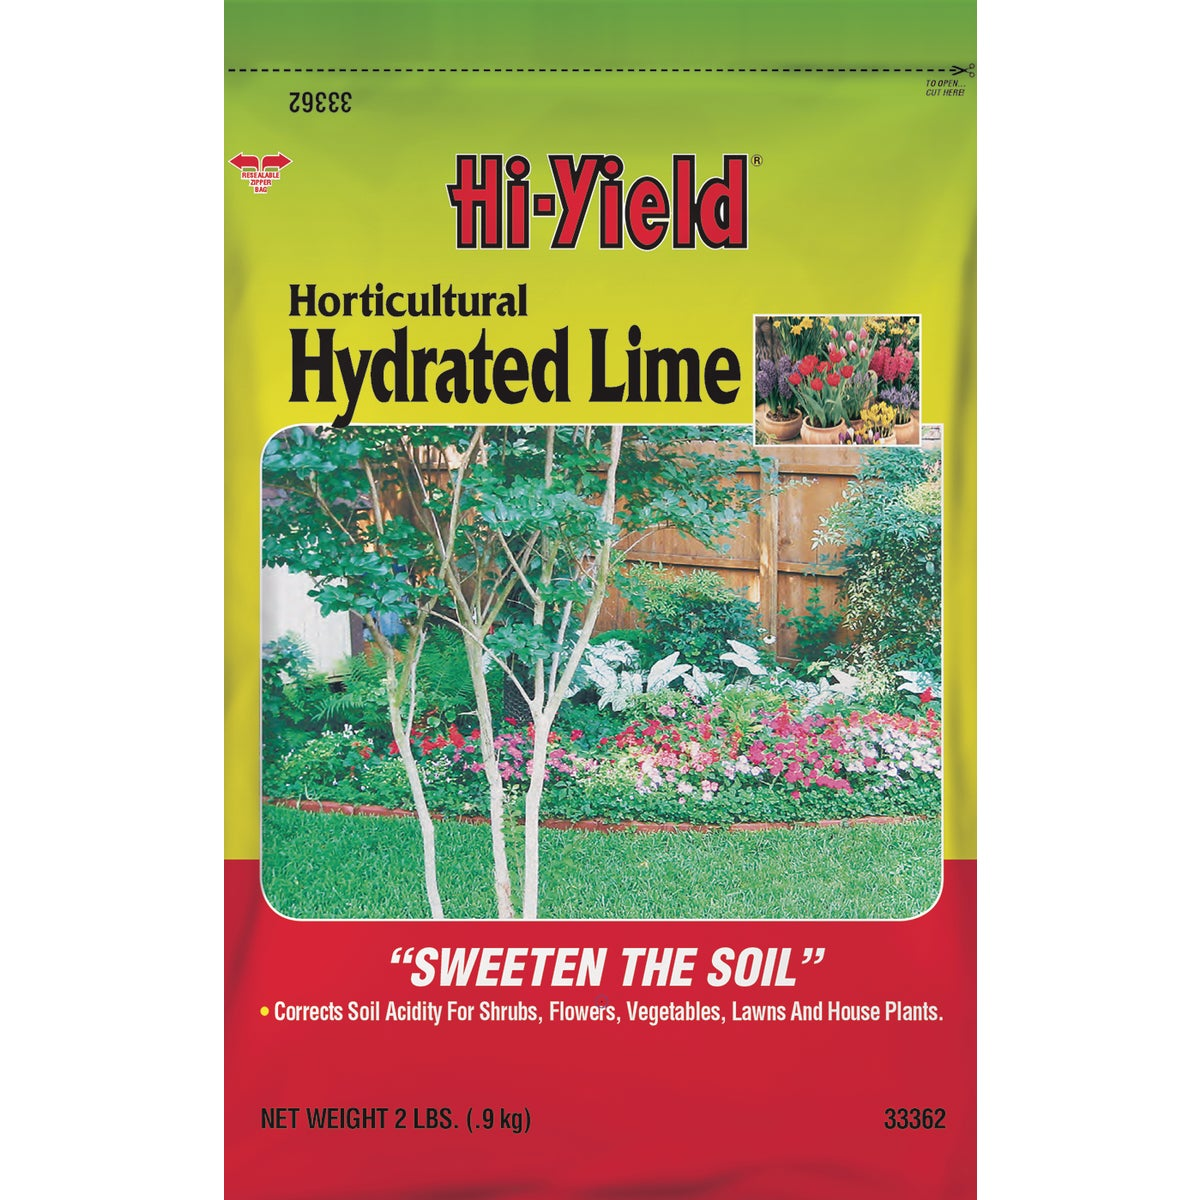 2LB HORT HYDRATED LIME - 33362 by Vpg Fertilome